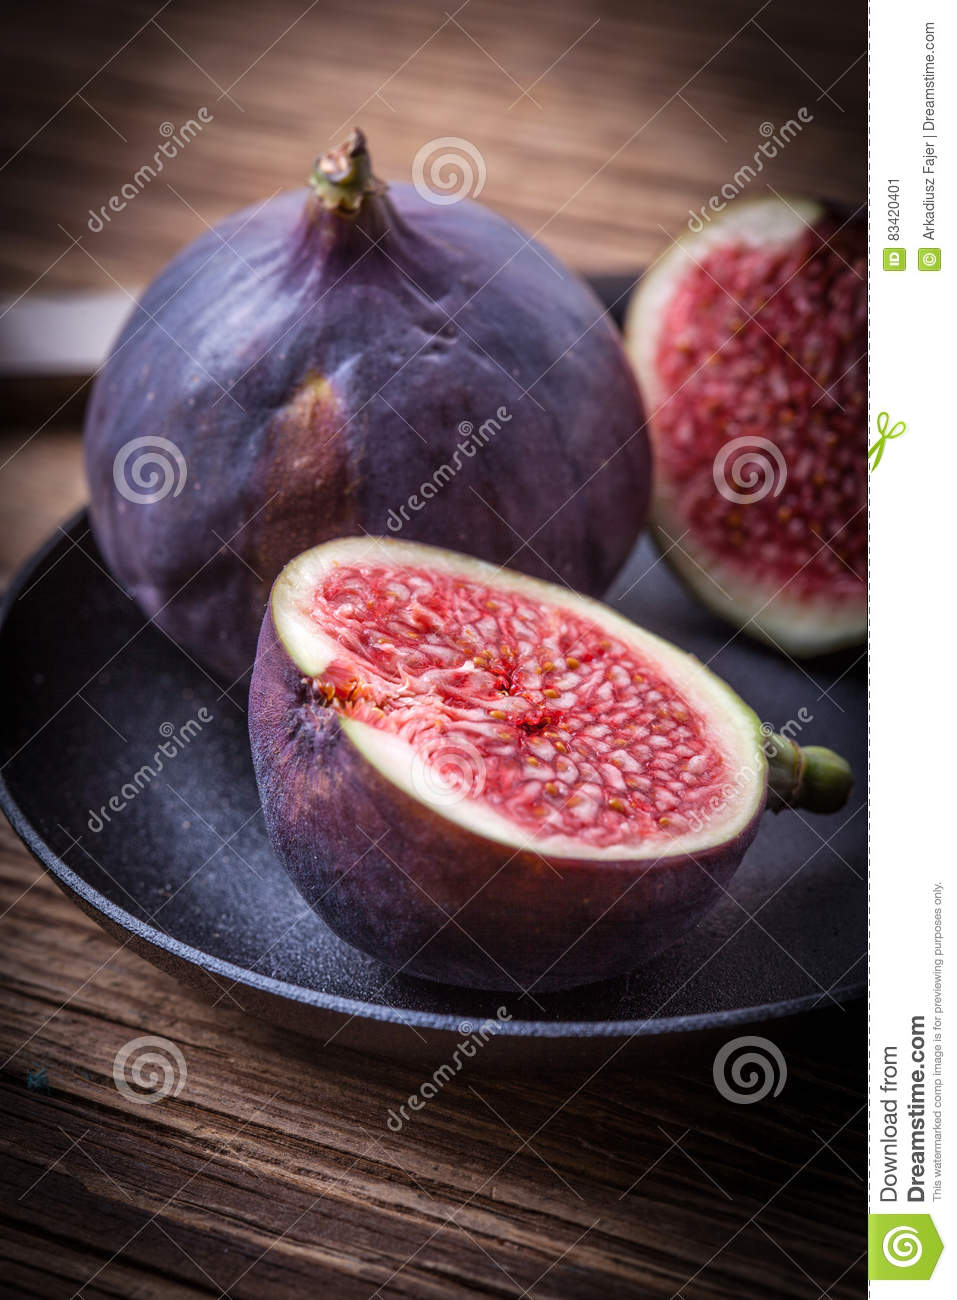 Sliced figs on a wooden table.